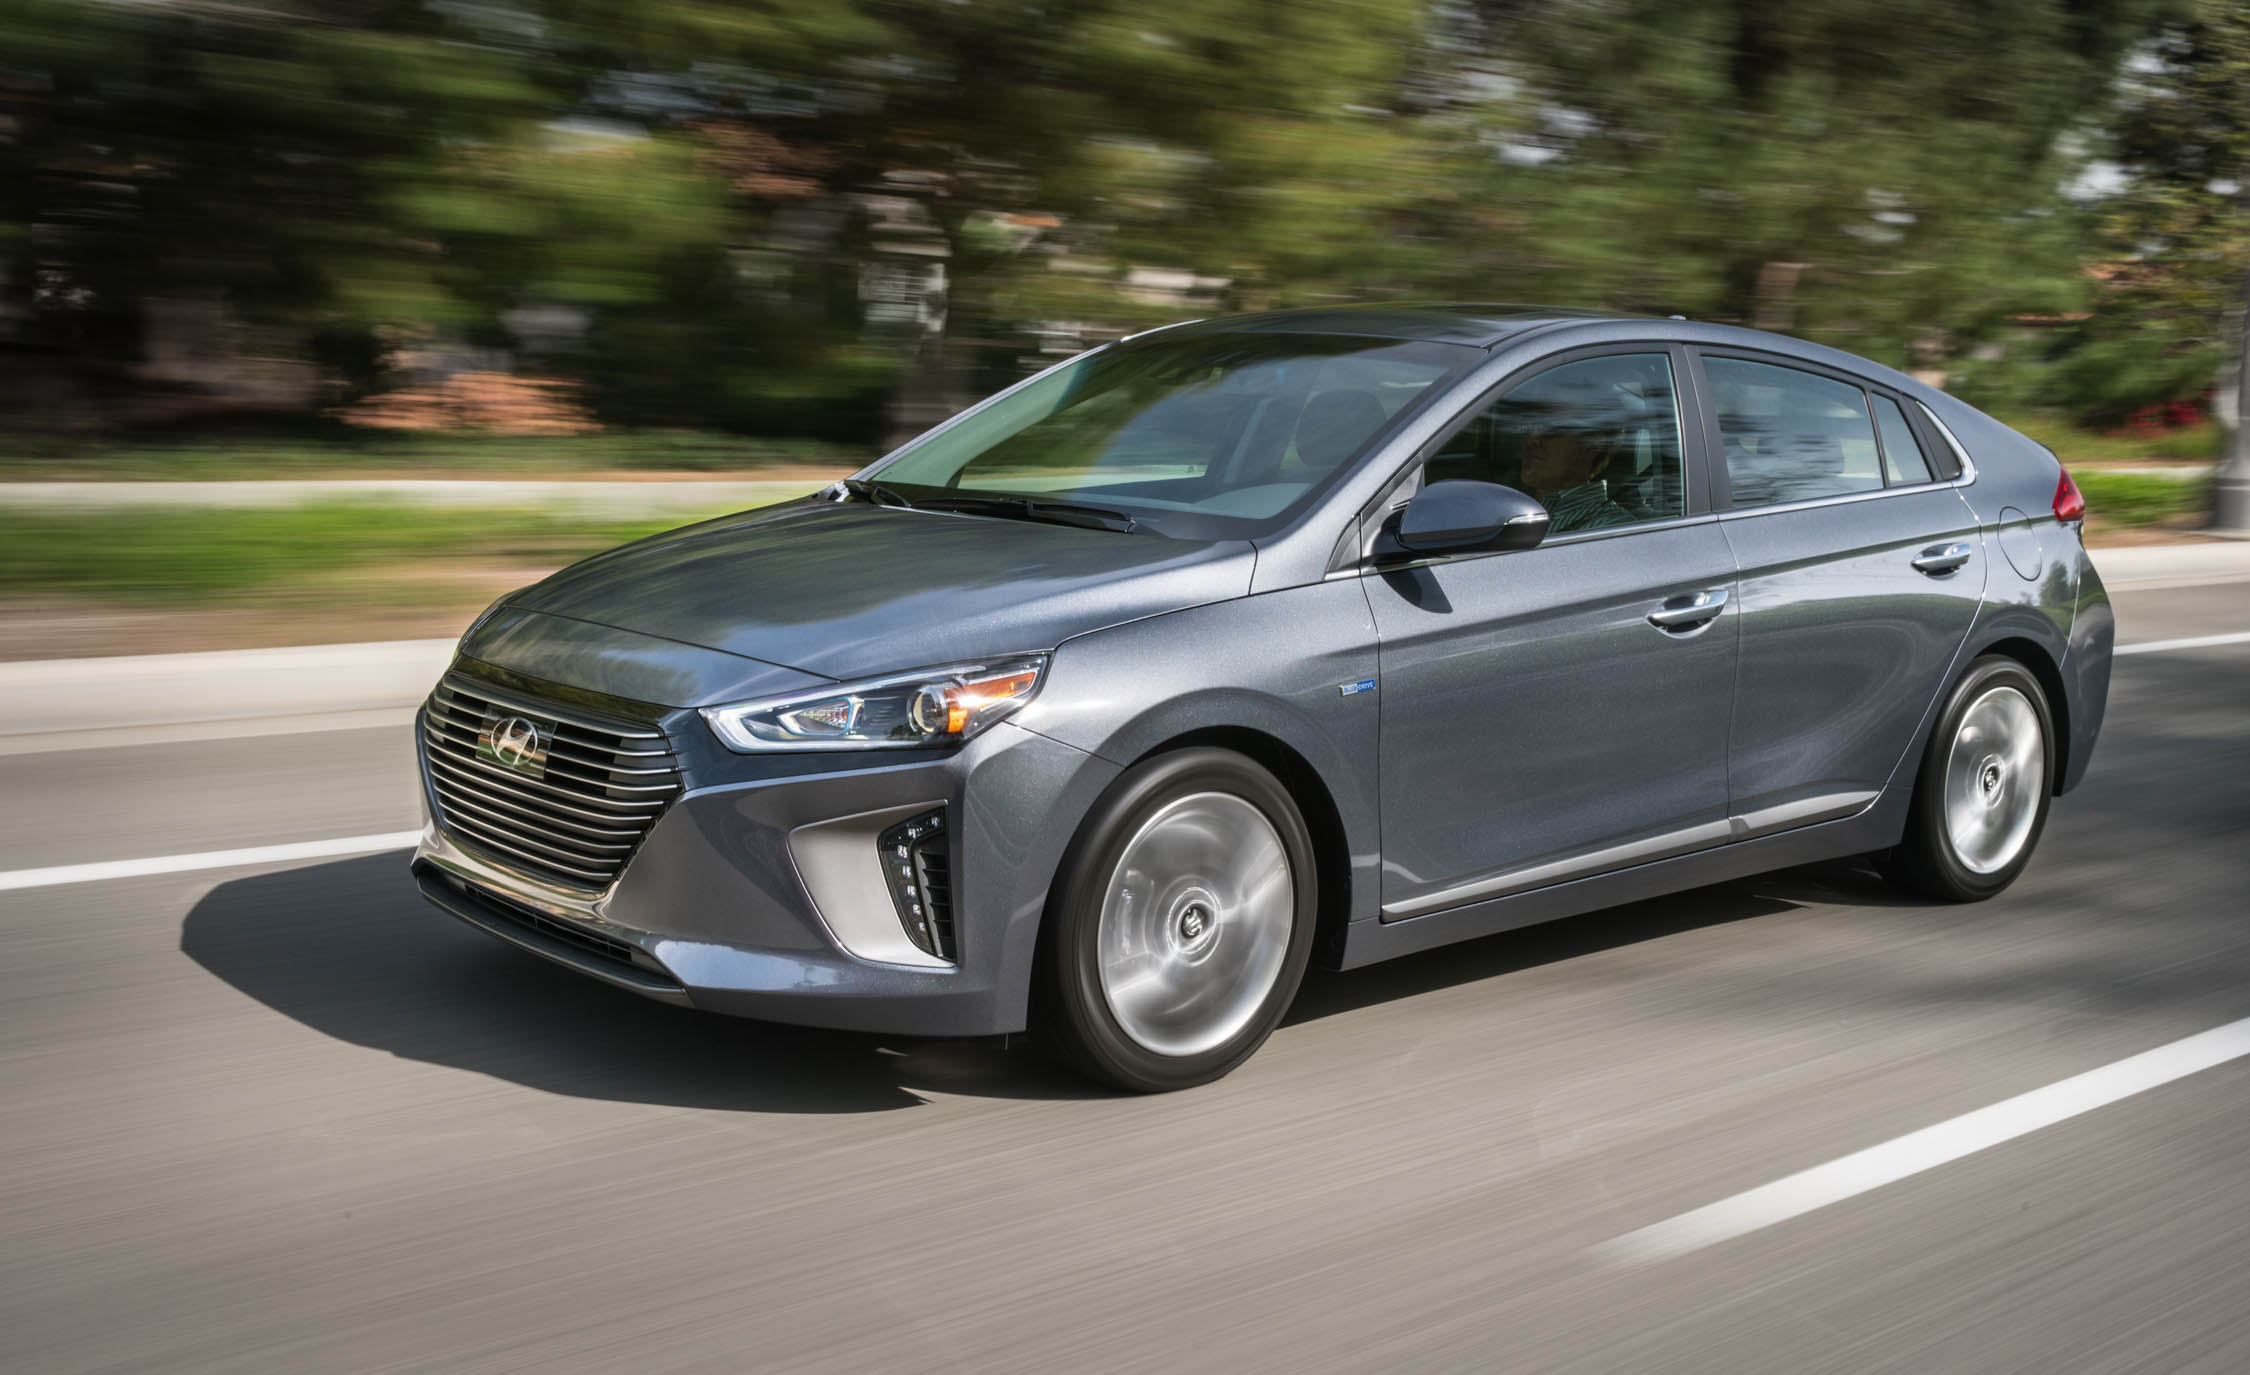 2017 Hyundai Ioniq Hybrid Test Drive Gray Metallic (Photo 62 of 67)